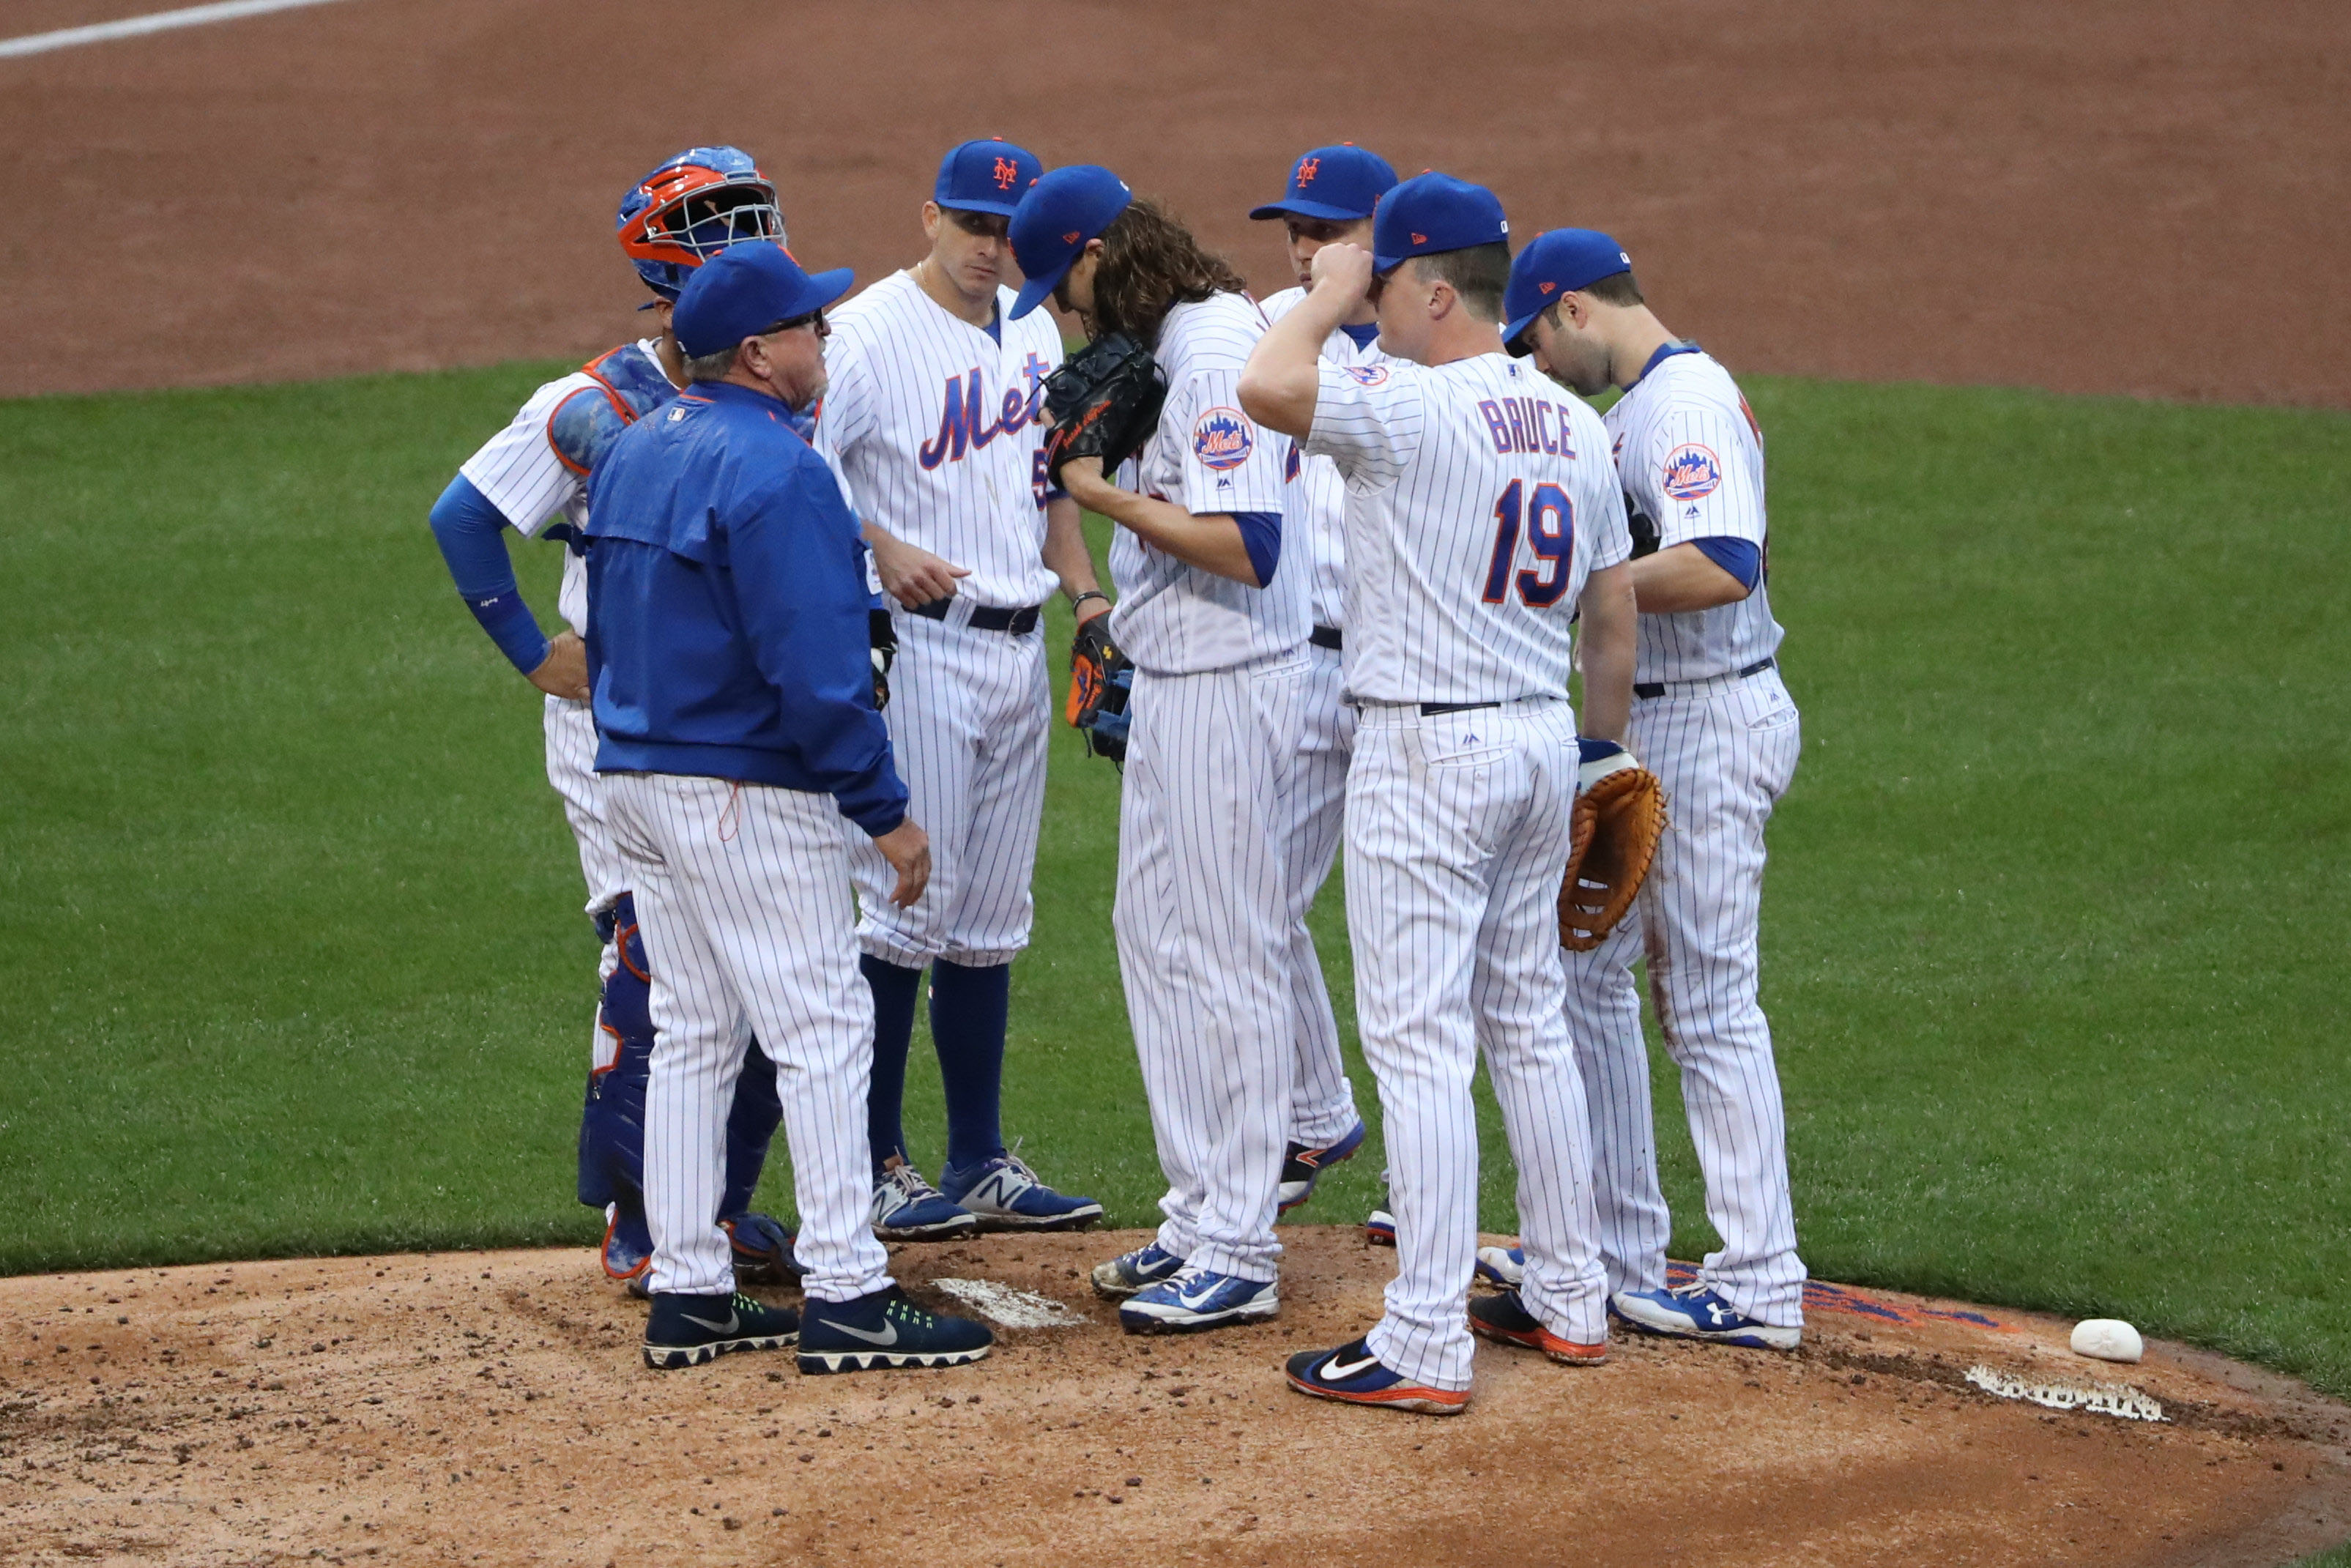 10025487-mlb-washington-nationals-at-new-york-mets